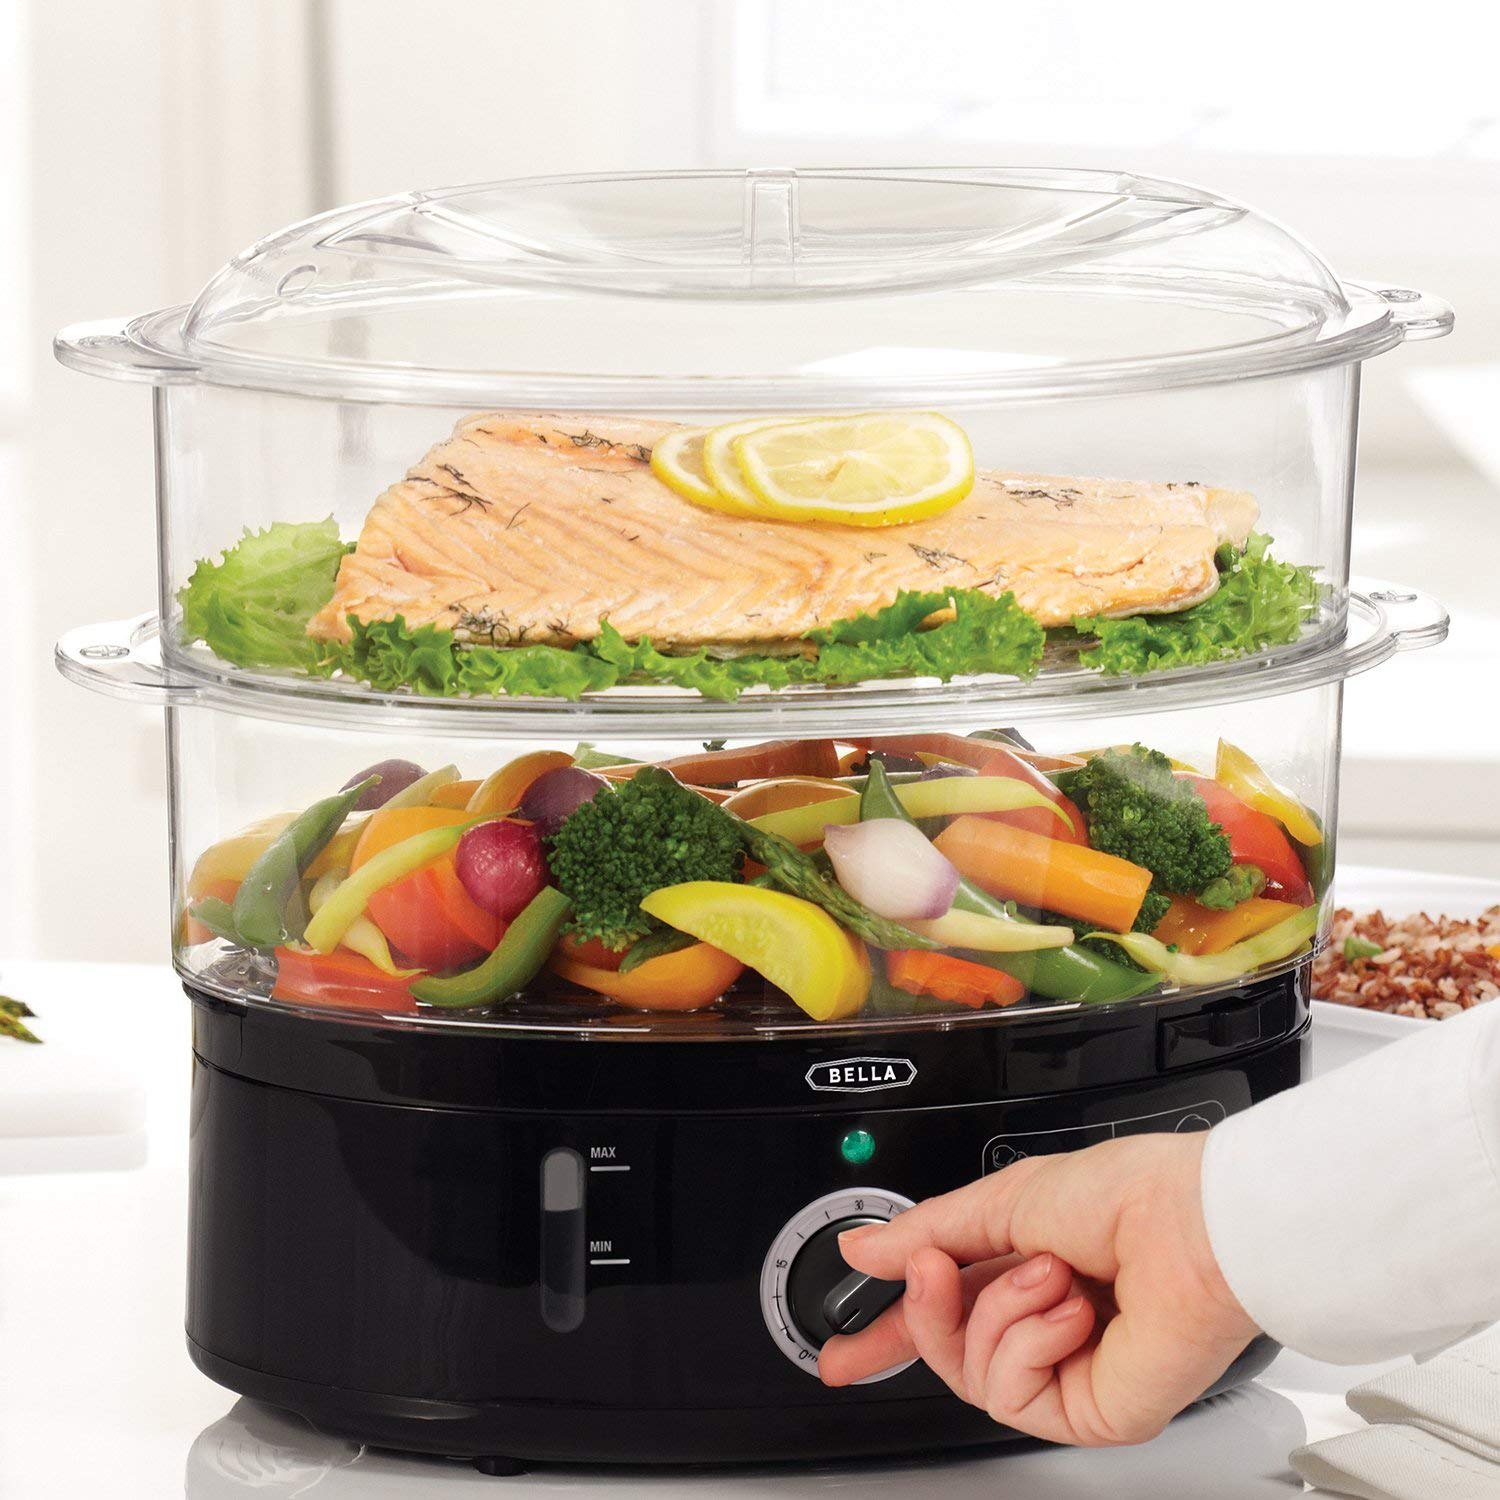 BELLA (13872) 7.4 Quart 2-Tier Stackable Baskets Healthy Food Steamer with Rice & Grains Tray